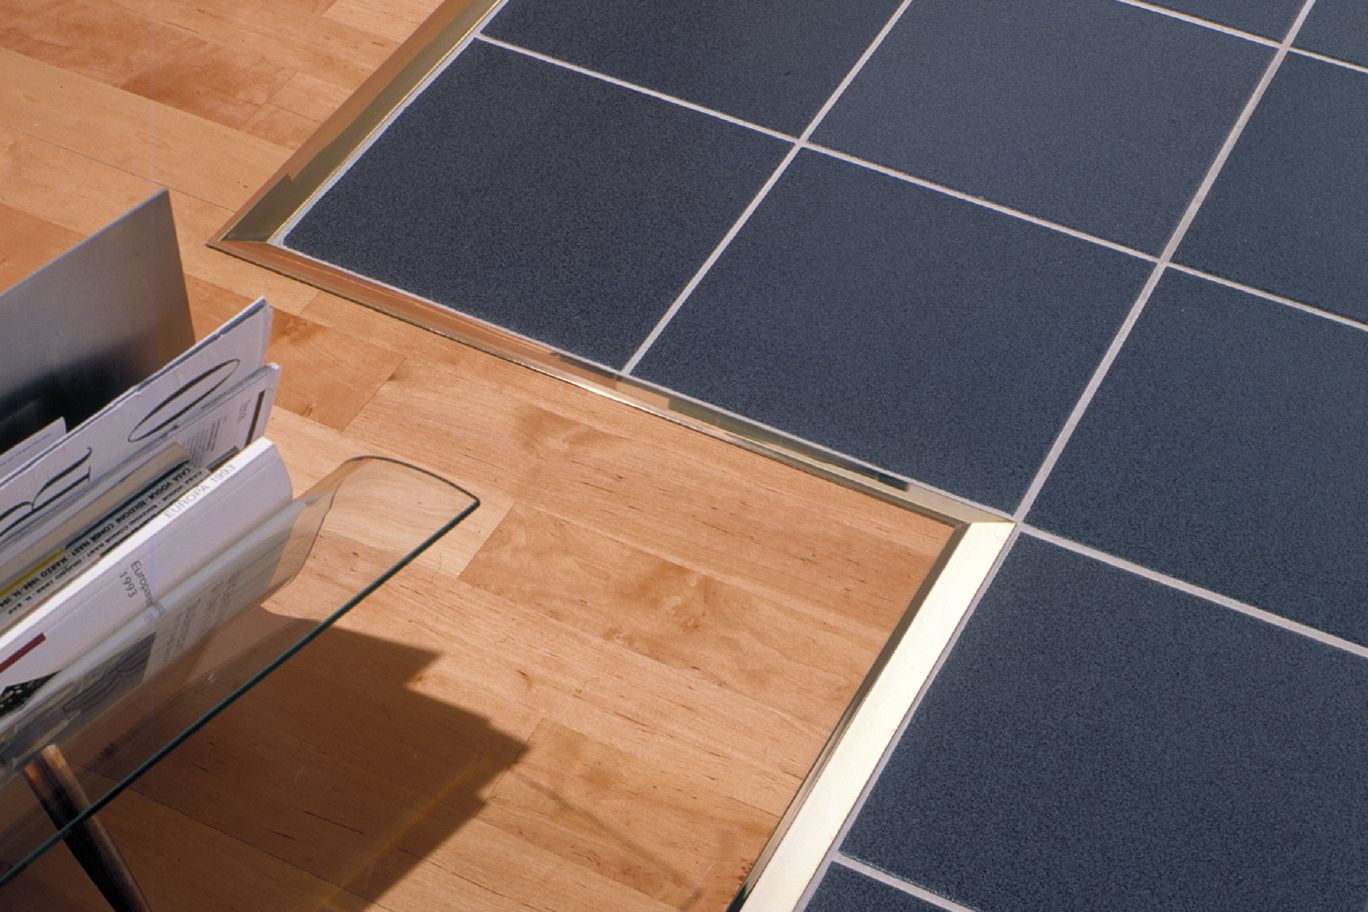 Schluter reno u sloped transitions for floors profiles schluter reno u dailygadgetfo Images